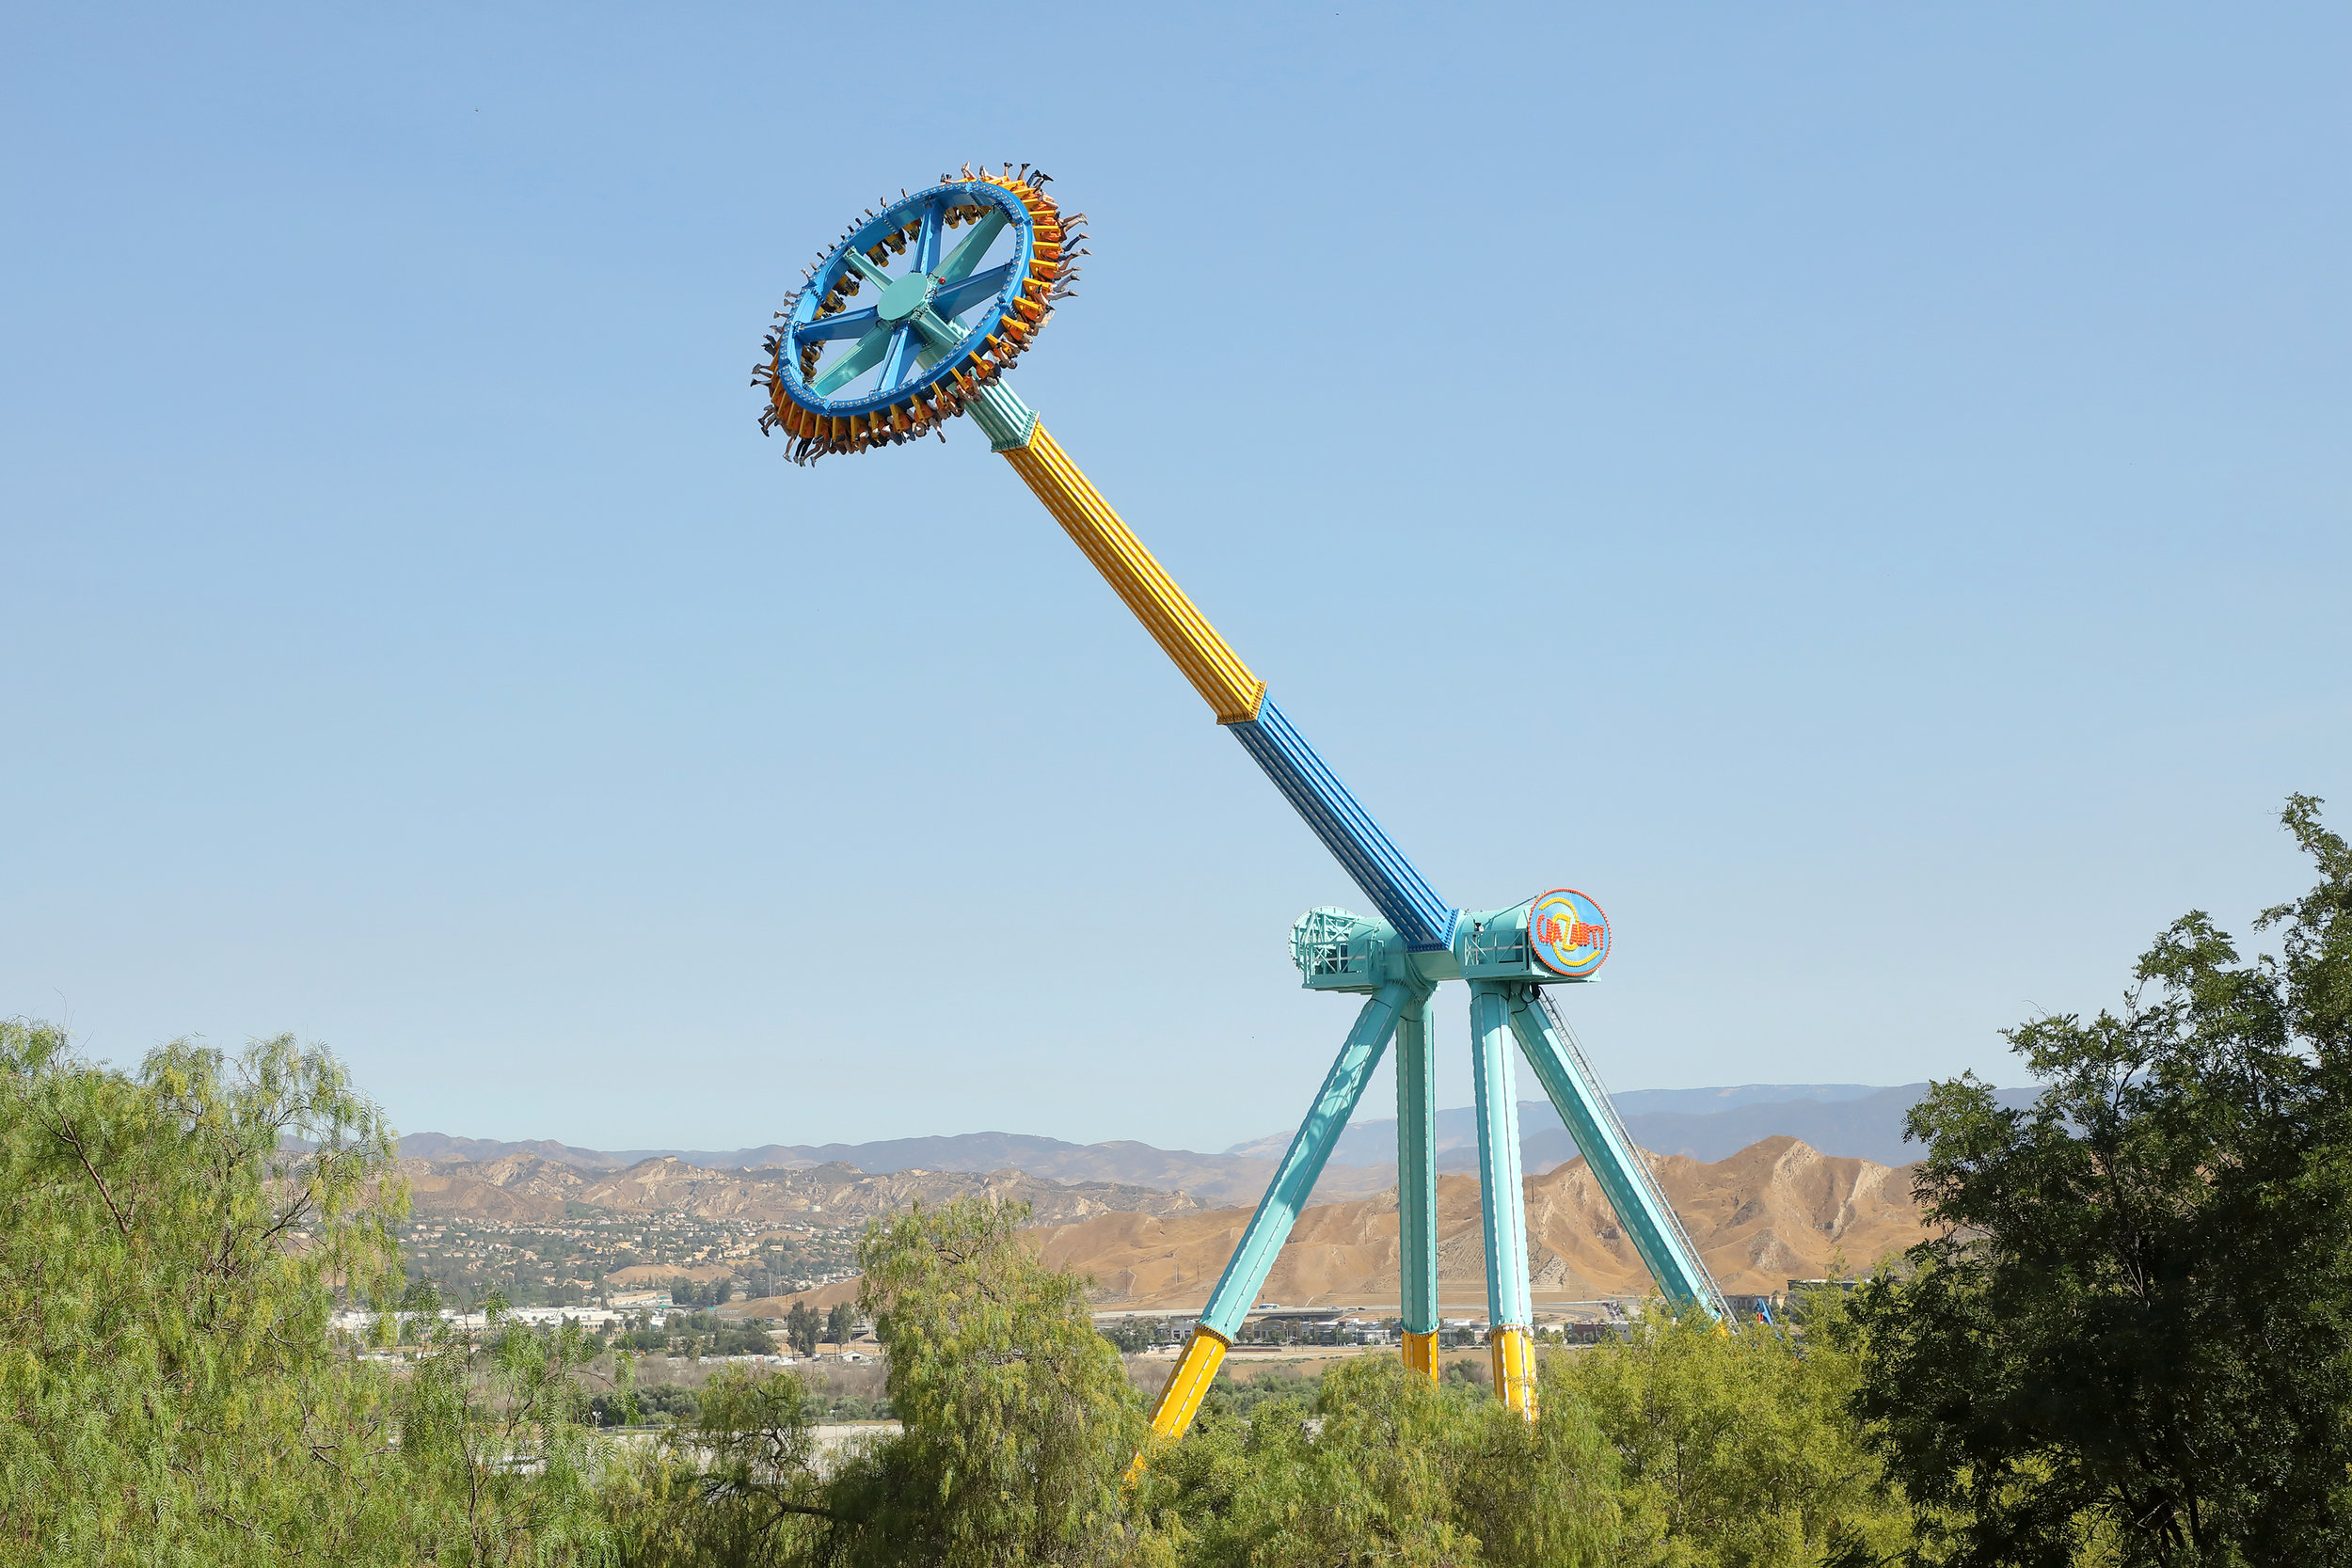 Crazanity in action at Six Flags Magic Mountain. Credit: Business Wire